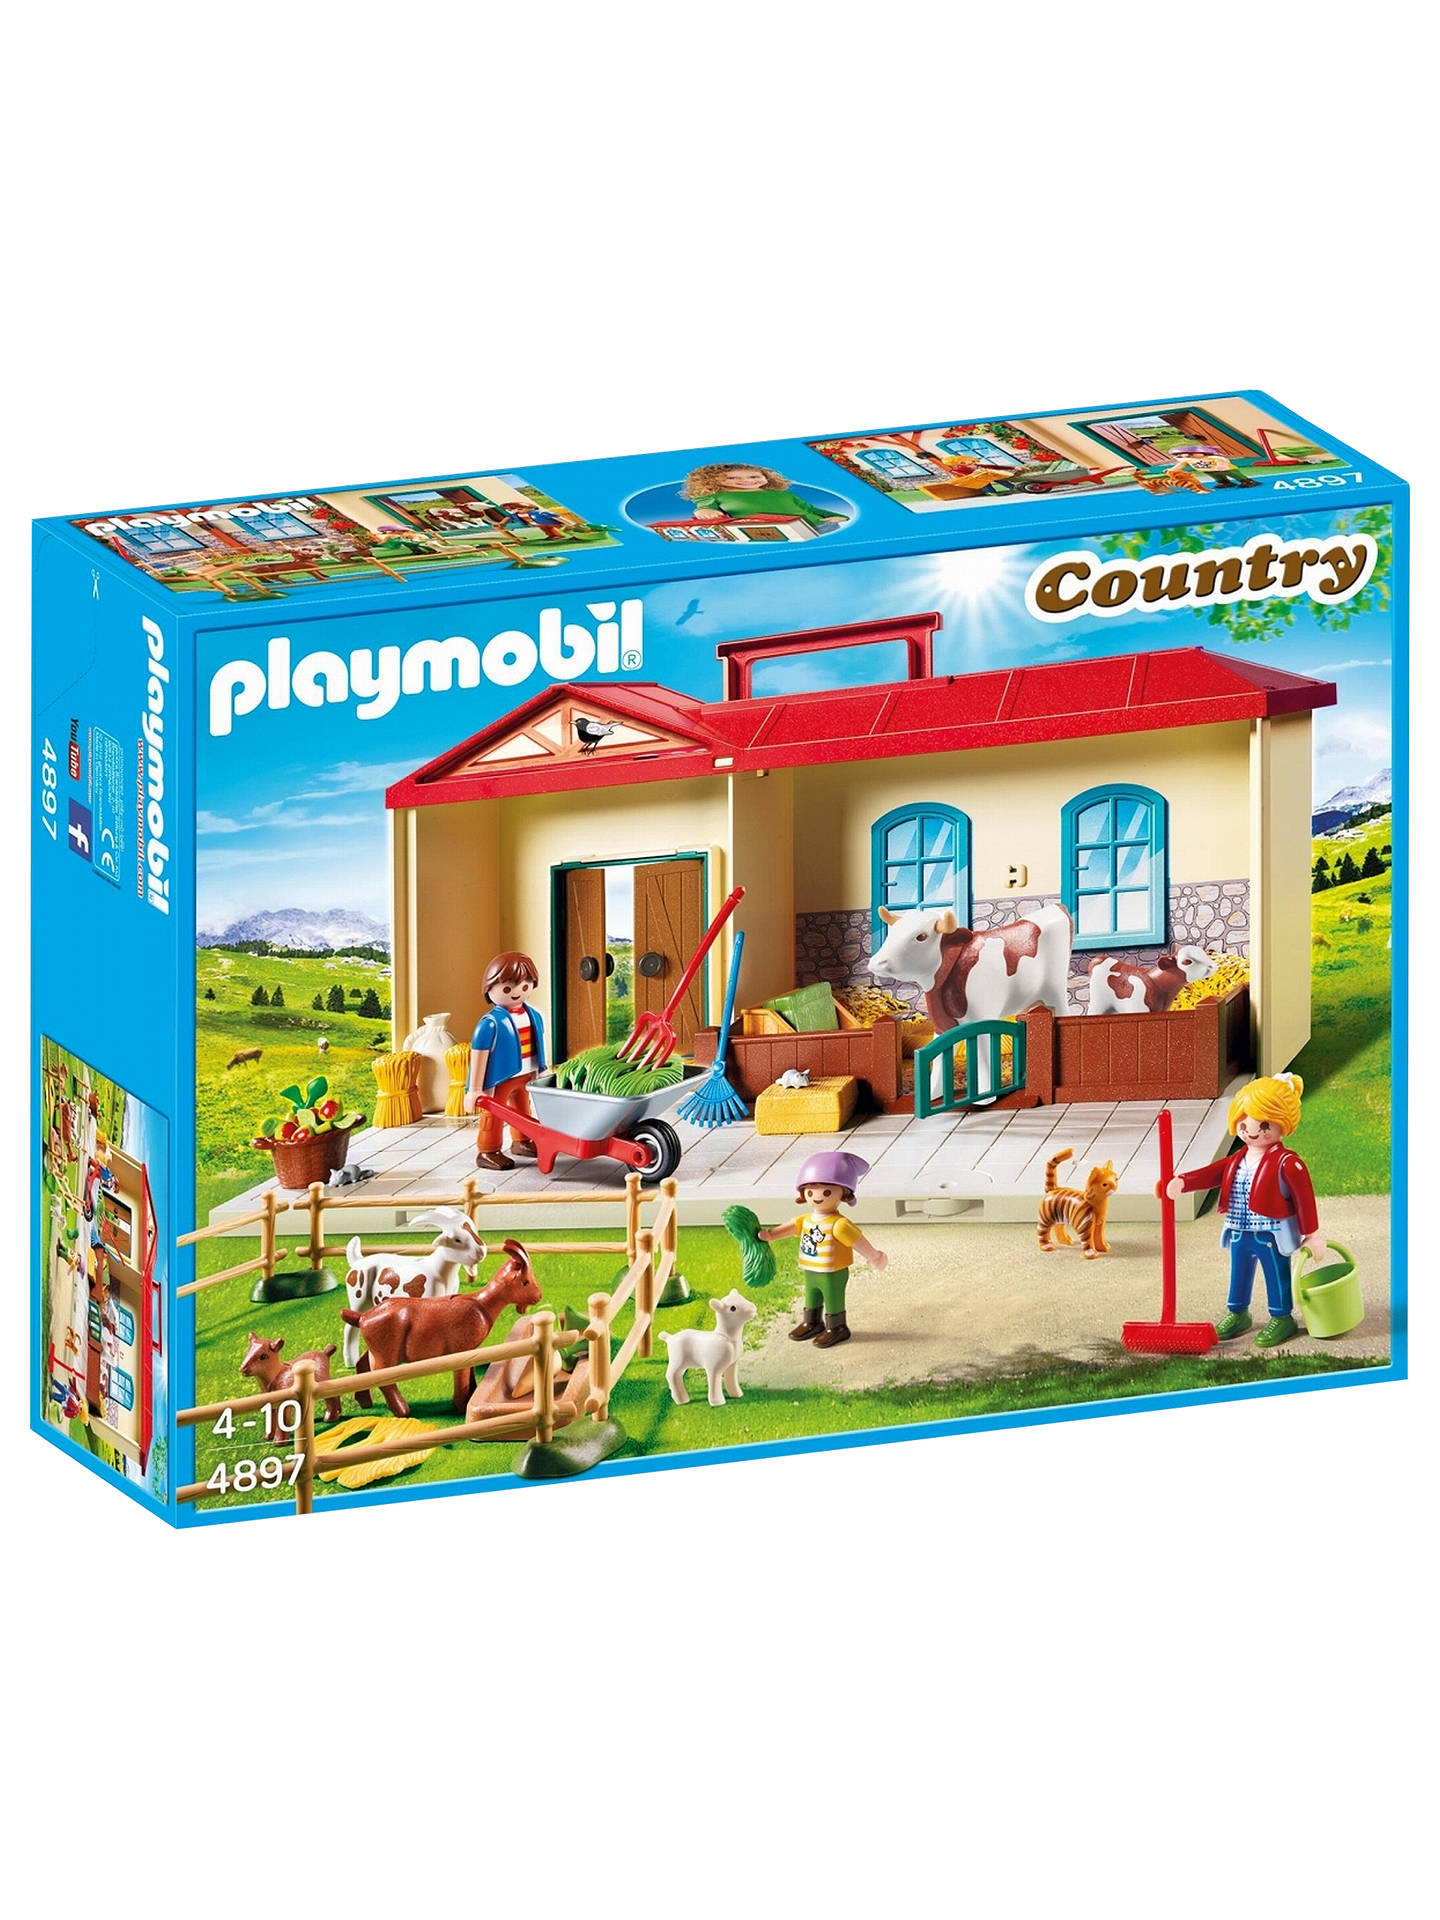 BuyPlaymobil Country 4897 Portable Country Take Along Farm with Carry Handle Set Online at johnlewis.com